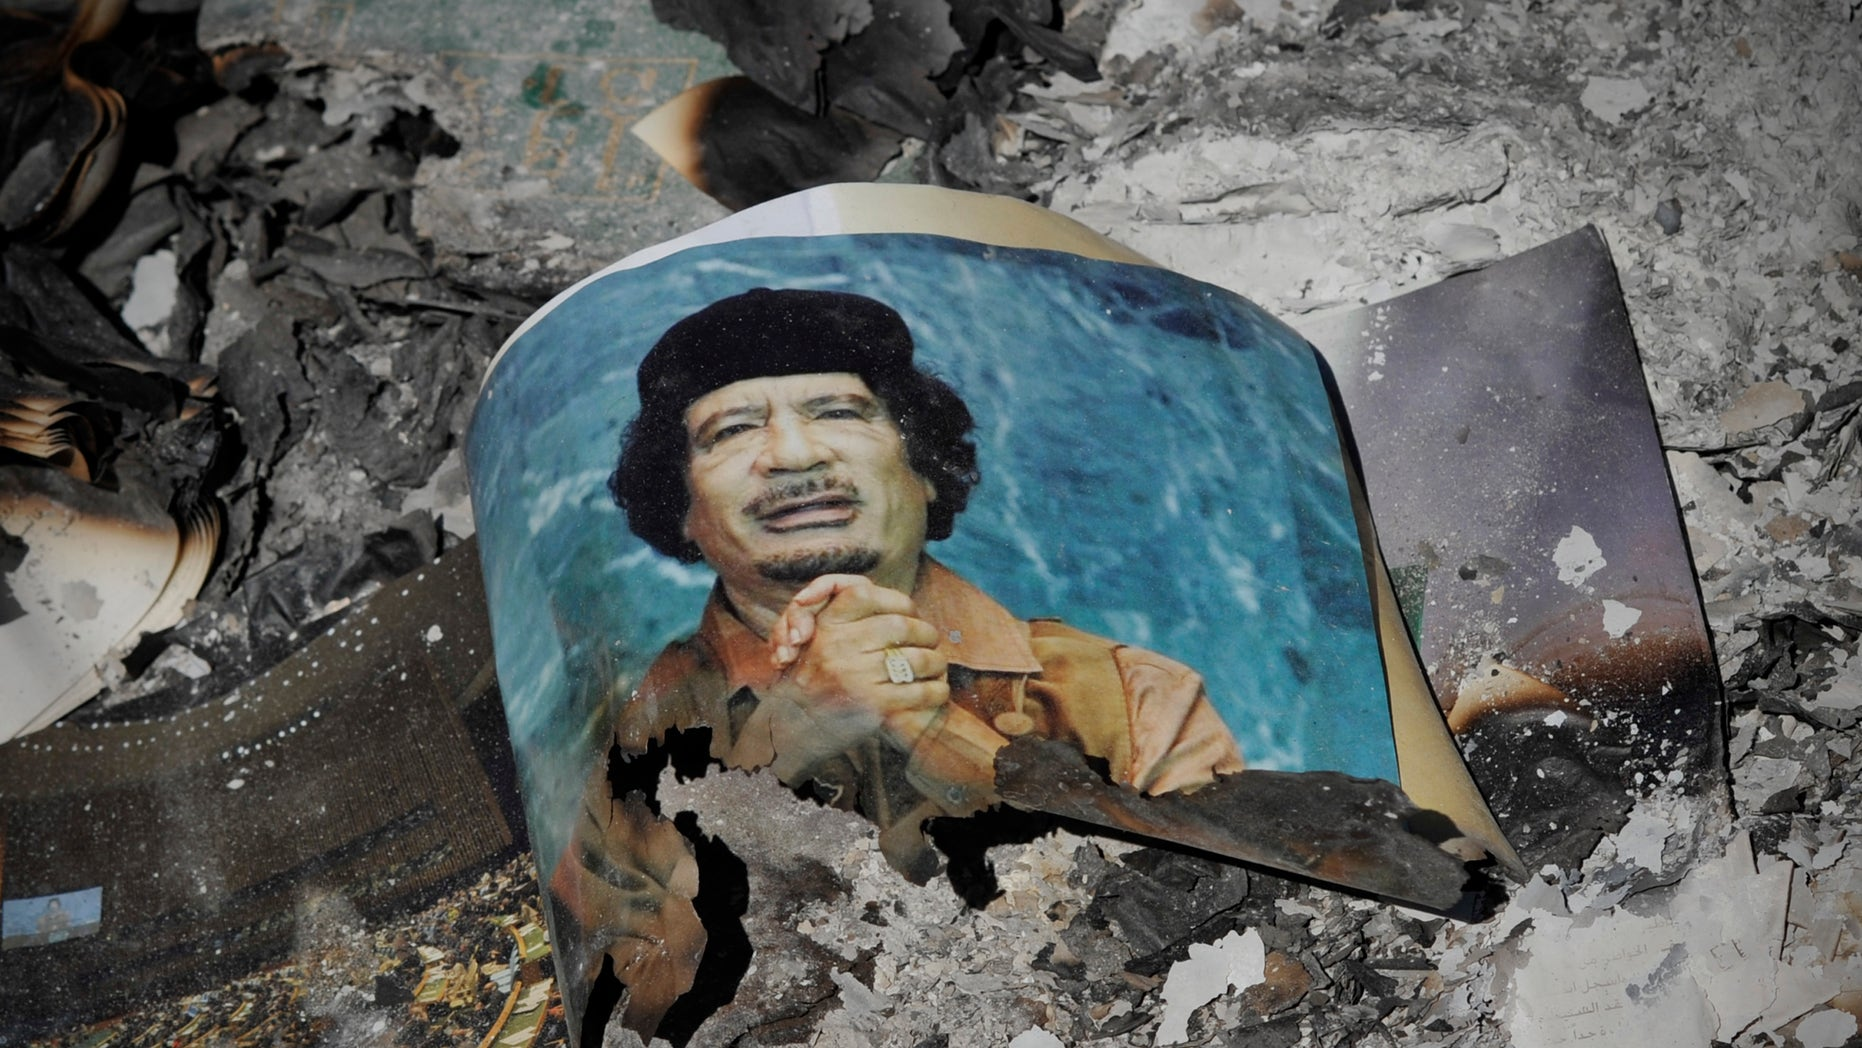 A picture of Libya's ousted leader Muammar Qaddafi is seen in the ashes in downtown Sirte, Libya, Wednesday, Oct. 12, 2011.